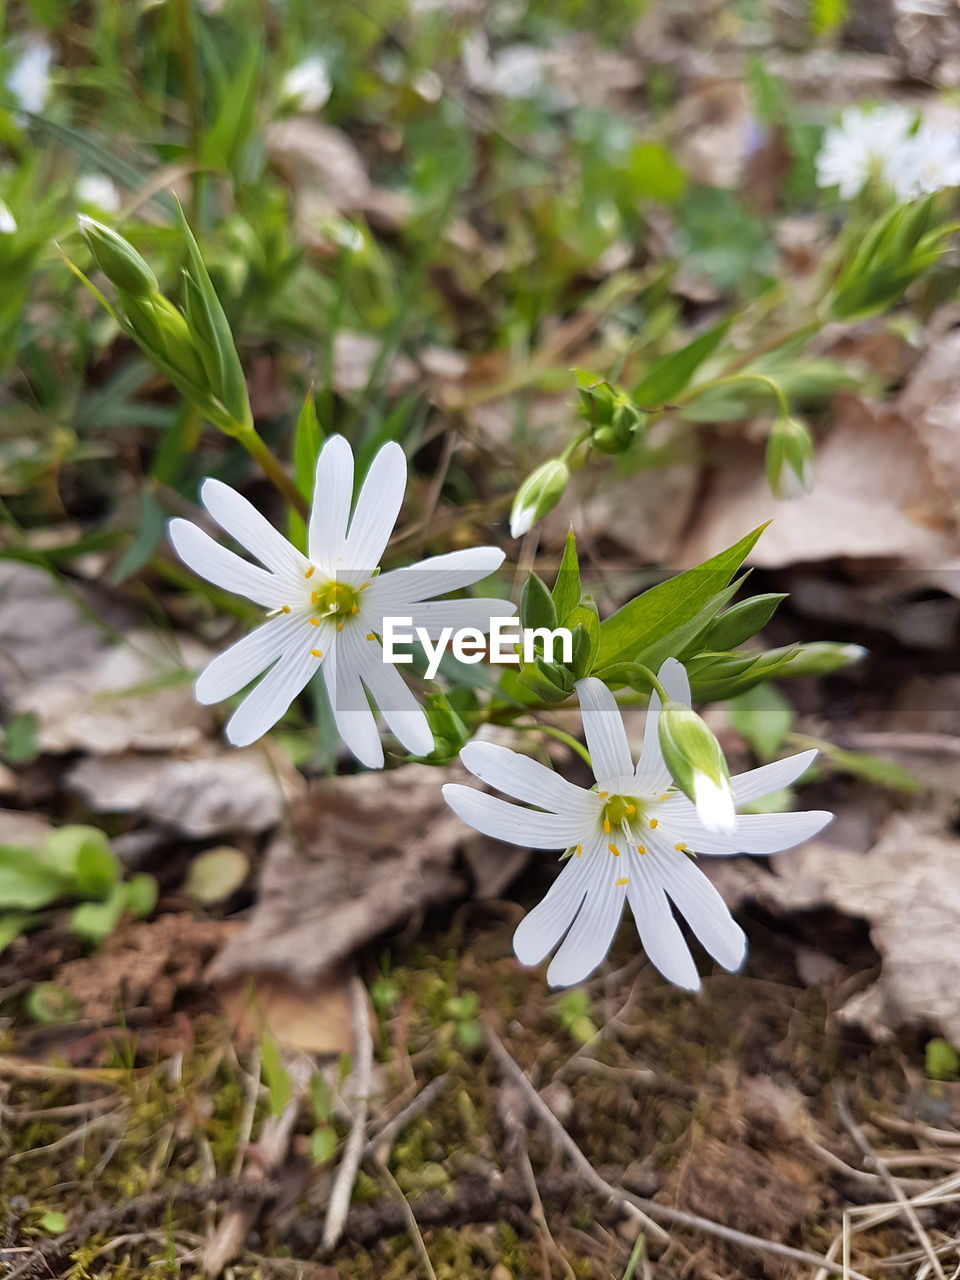 flower, nature, fragility, growth, white color, petal, freshness, plant, beauty in nature, flower head, blooming, no people, day, outdoors, close-up